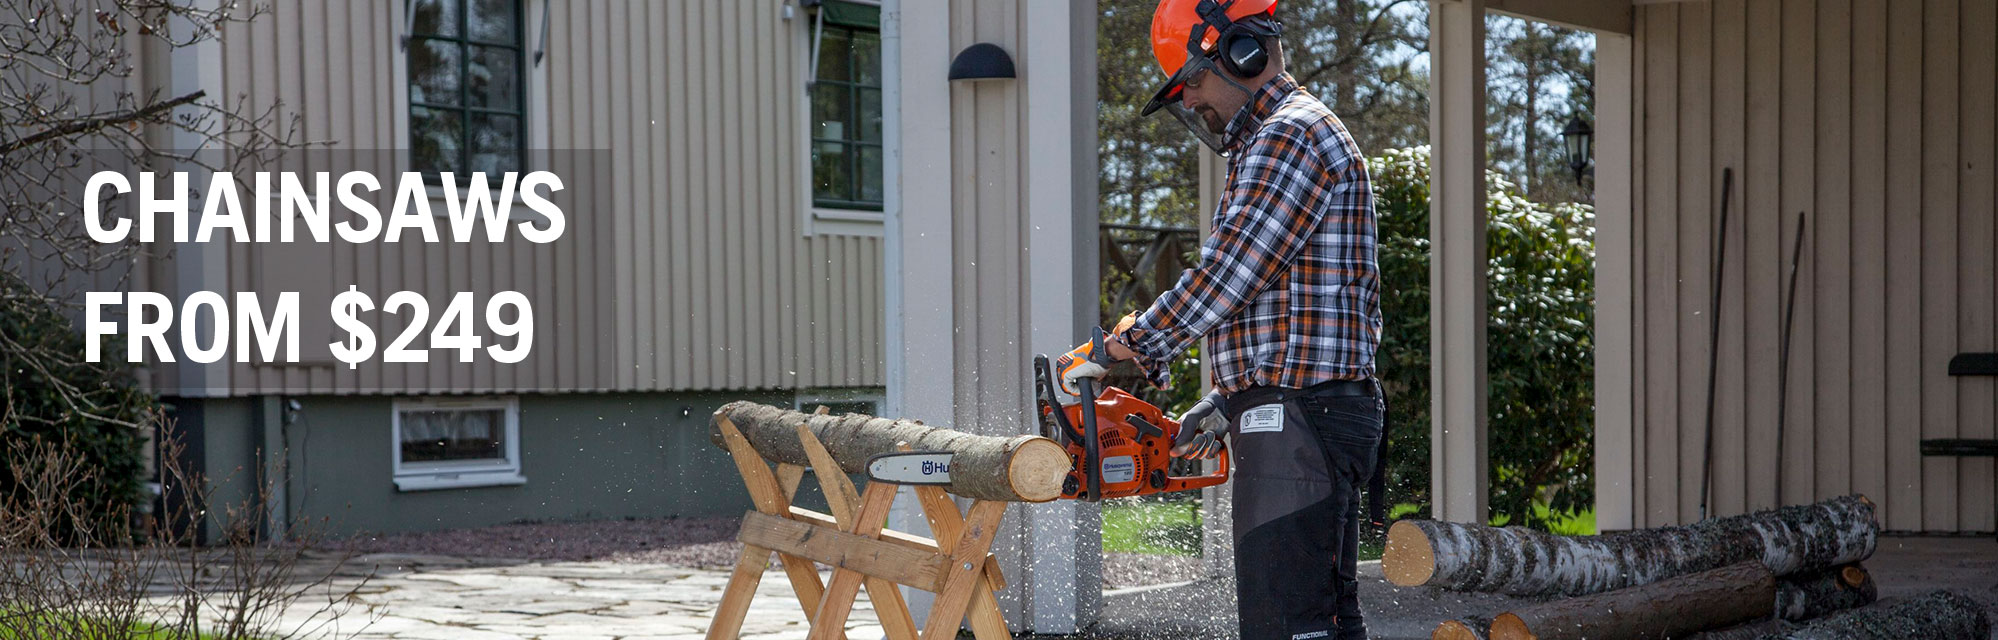 Chainsaws From $249